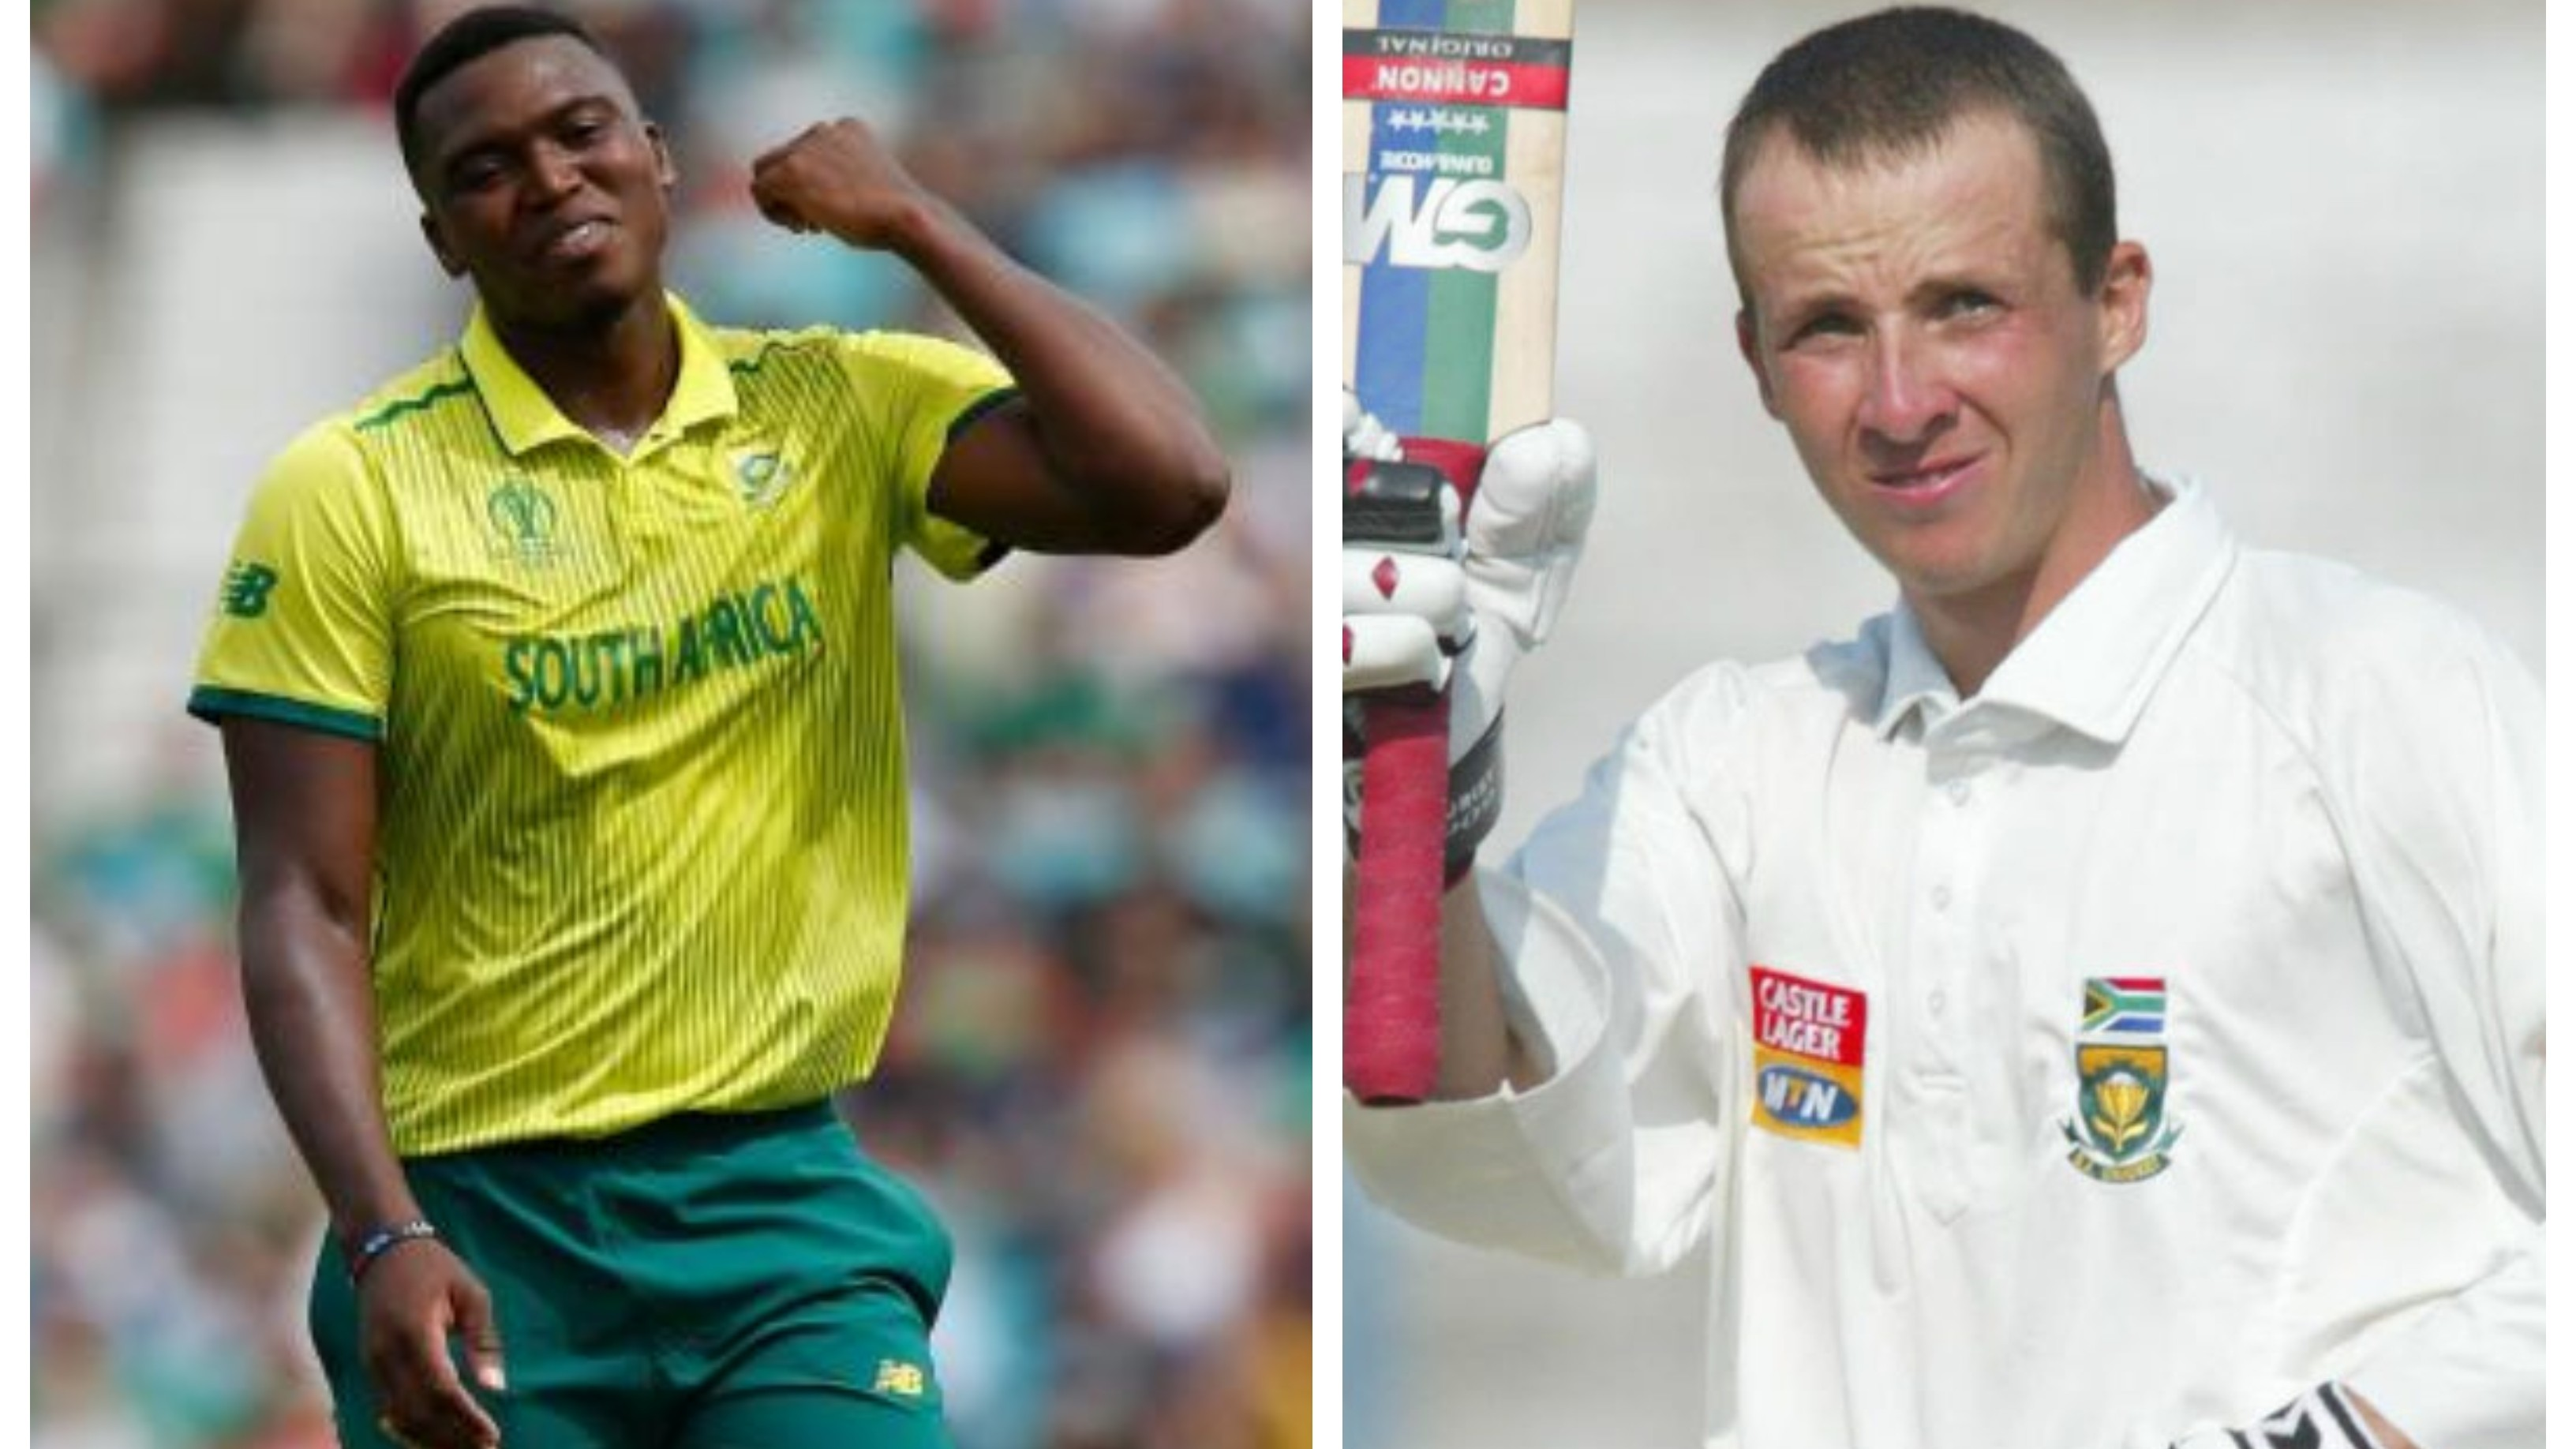 'If I misunderstood Ngidi, I will happily apologise', Dippenaar maintains his views on BLM movement